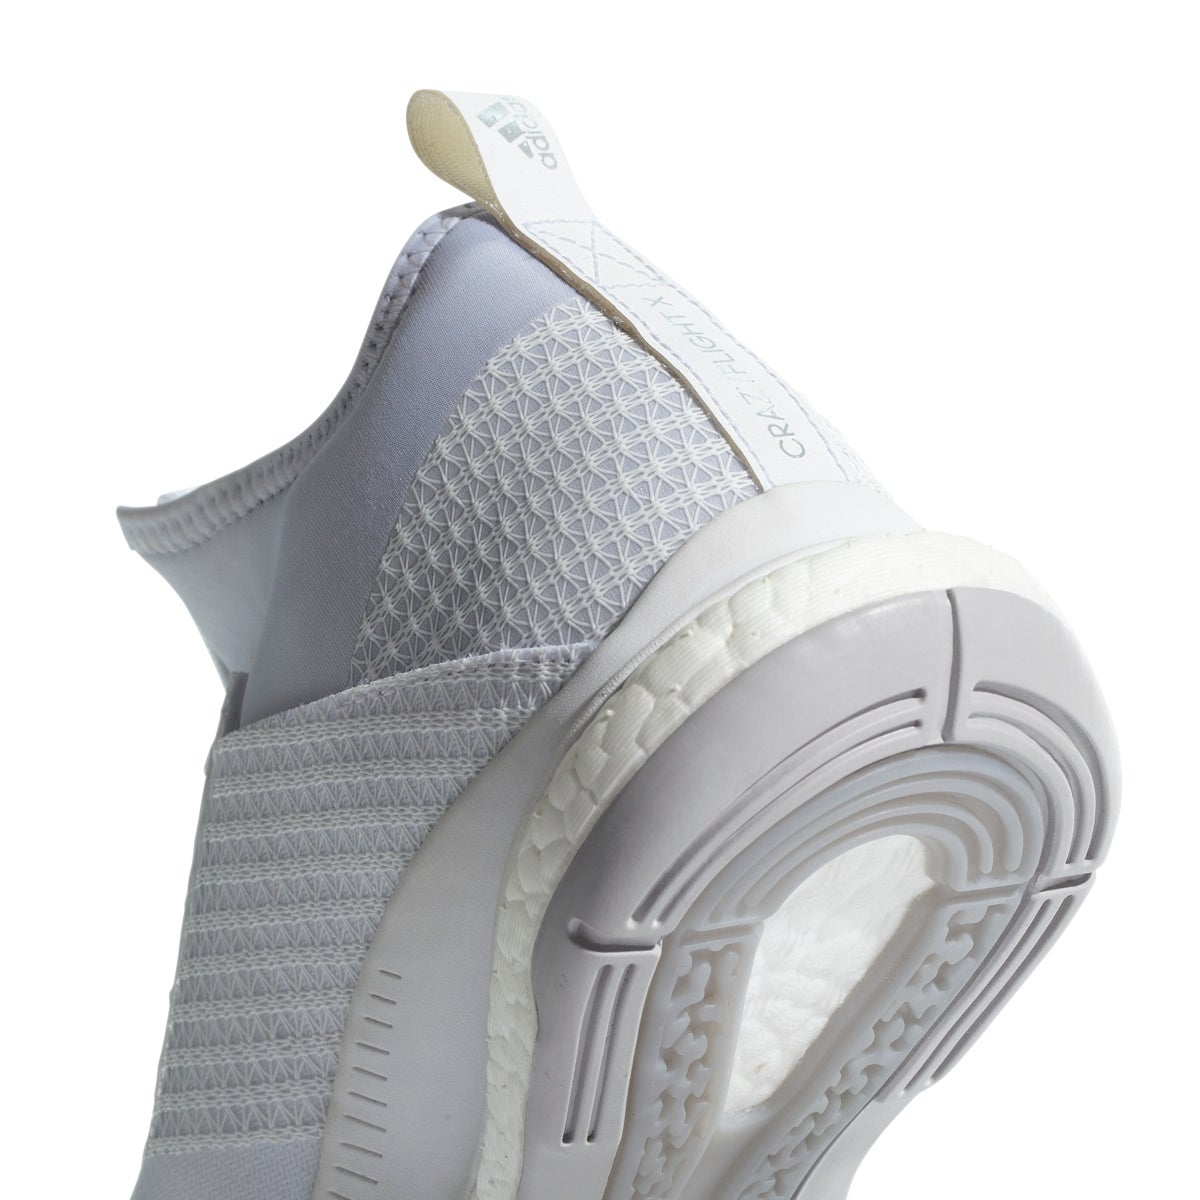 0bd67a4f4 Shop Adidas Women s Crazyflight X 2 Mid Volleyball Shoe - Free Shipping  Today - Overstock - 27296065